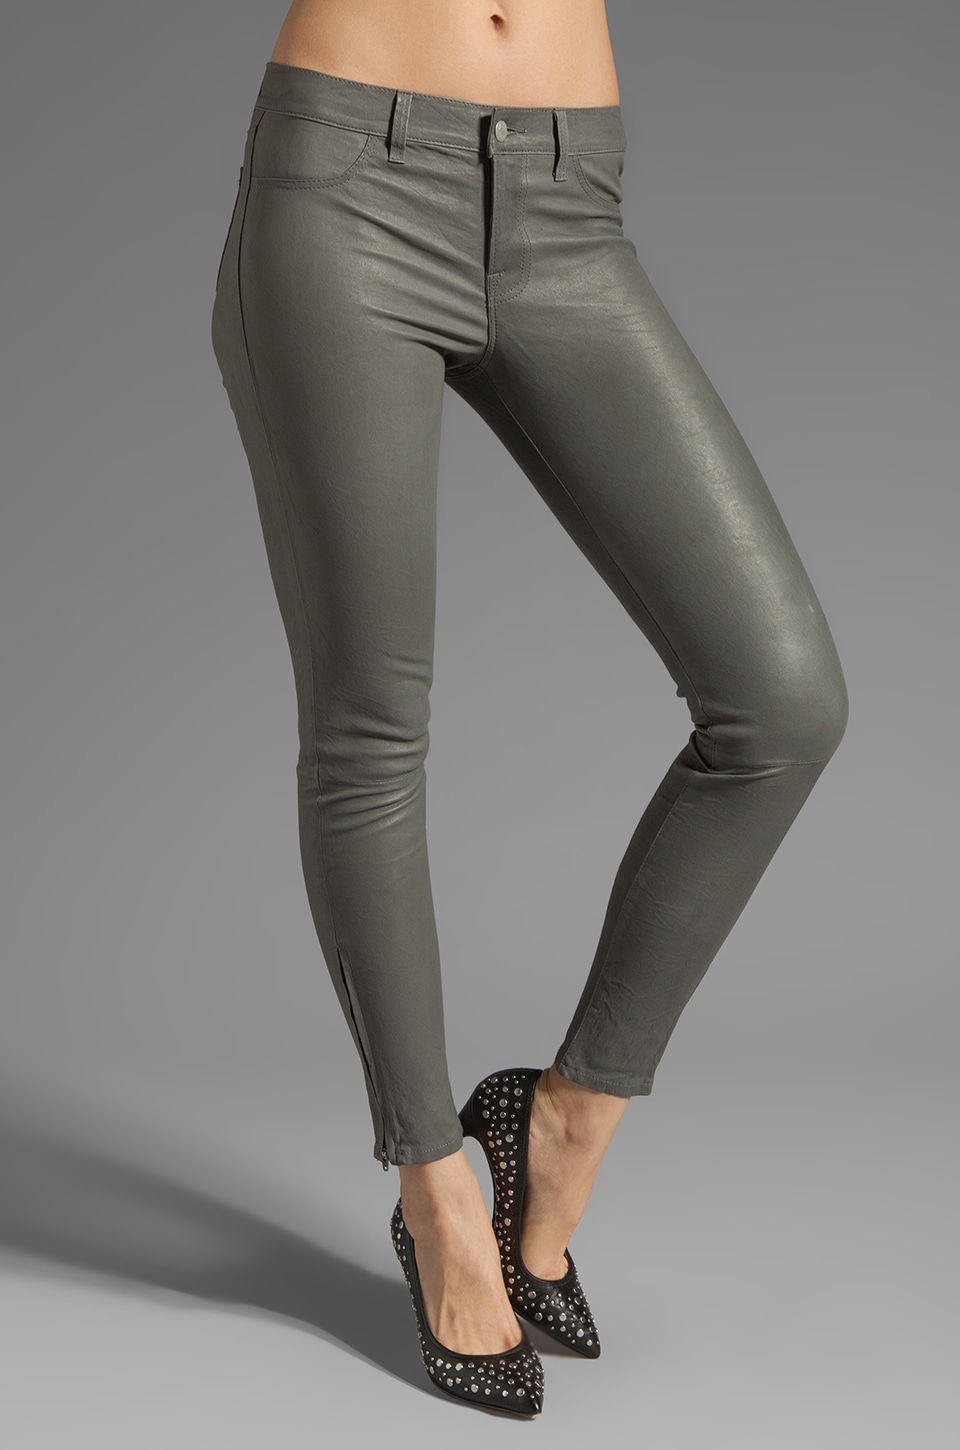 J Brand Super Skinny Leather in Cement